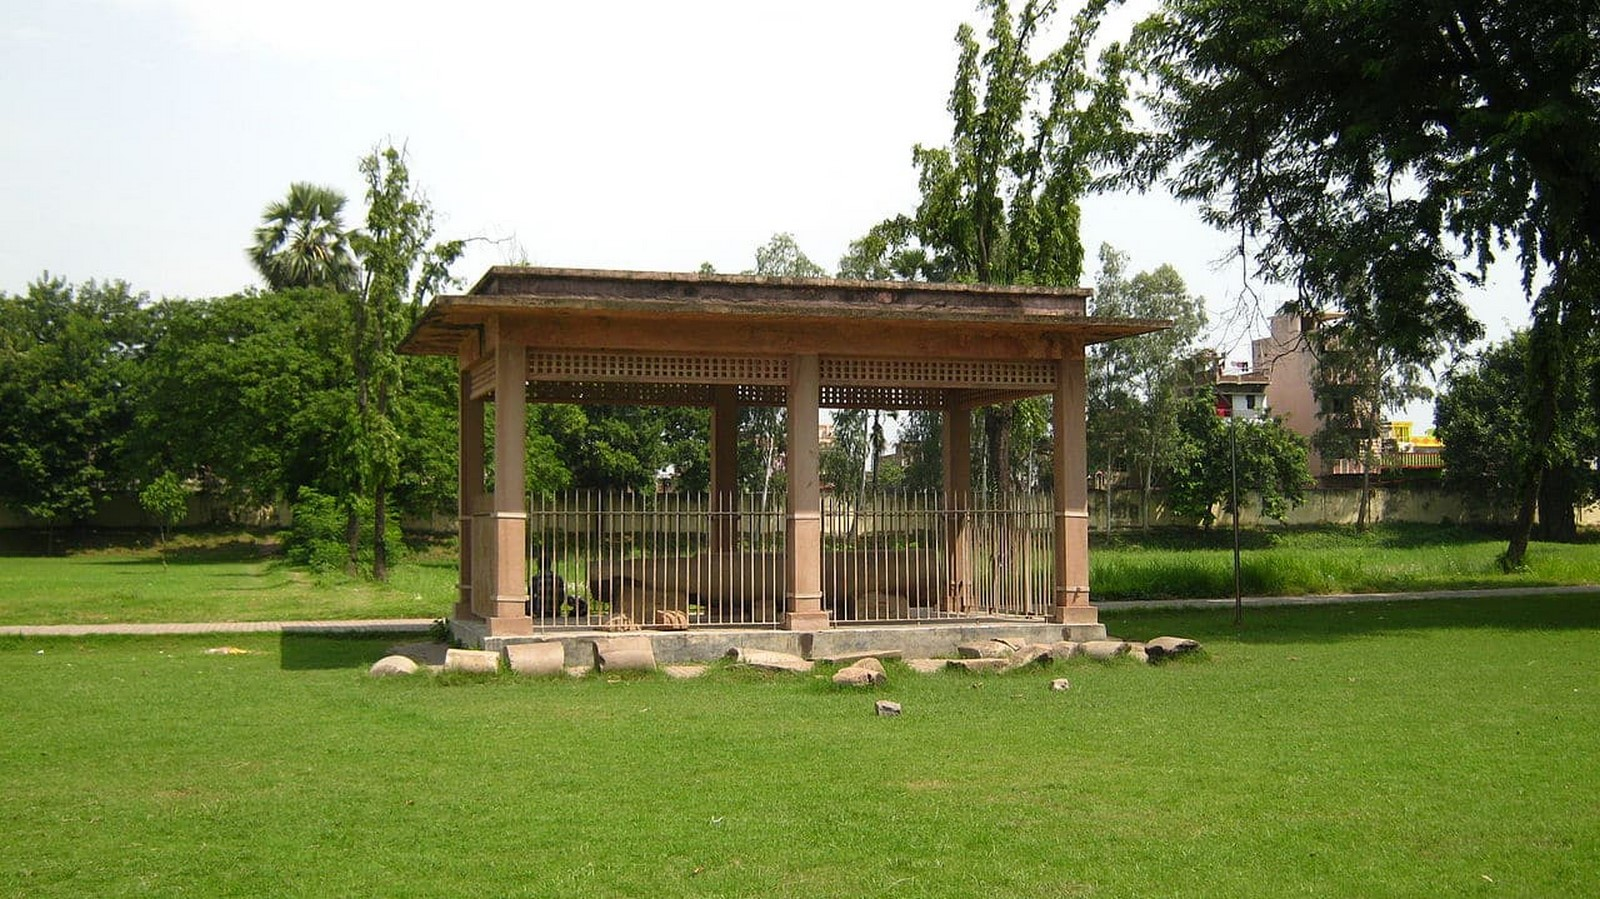 What can Indian structural marvels teach architects - Sheet2